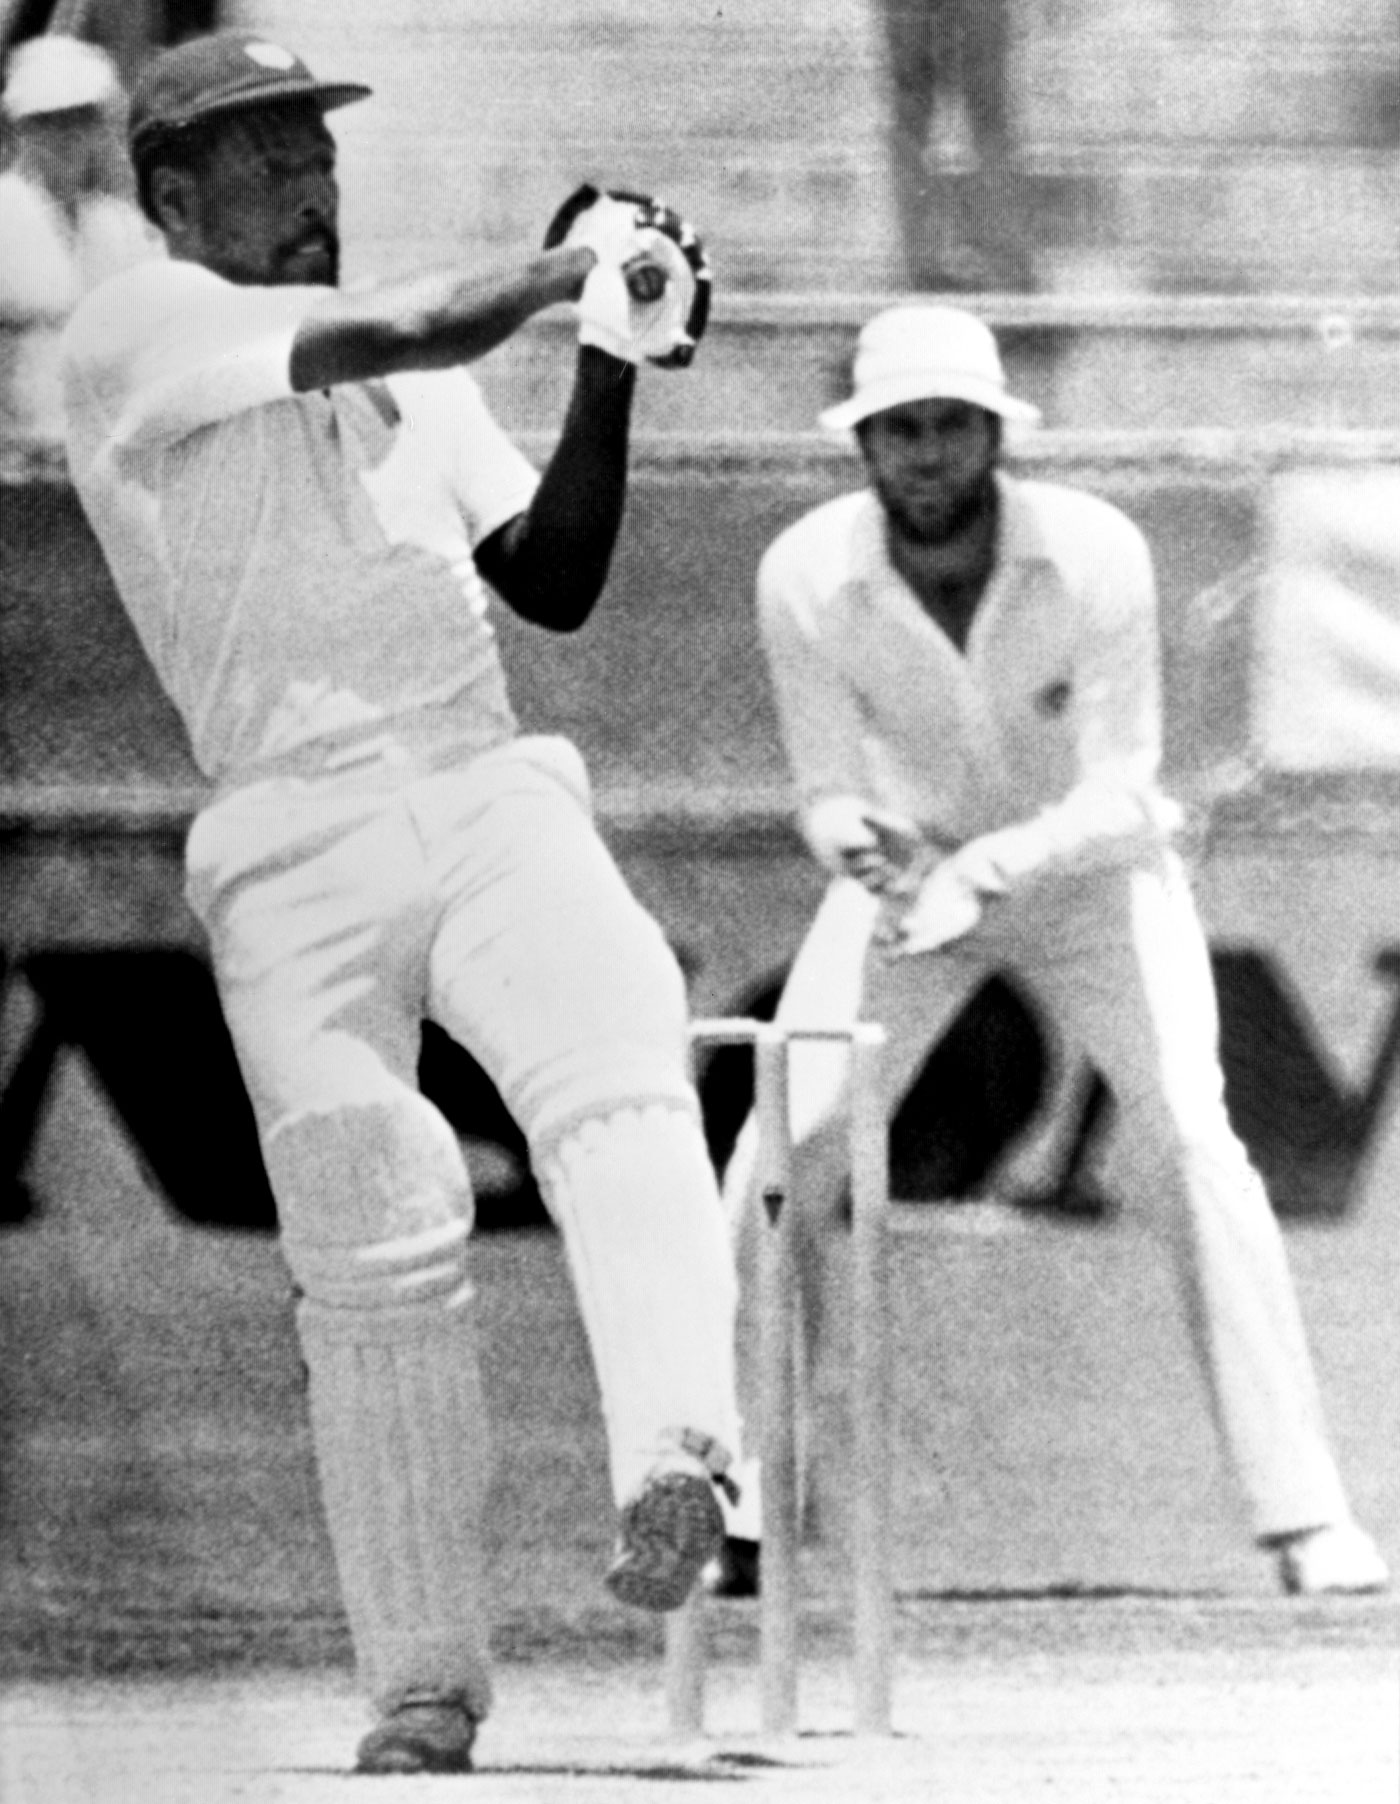 Lillee, Thommo, who? Before the Adelaide 76, Viv Richards made 140 in Brisbane